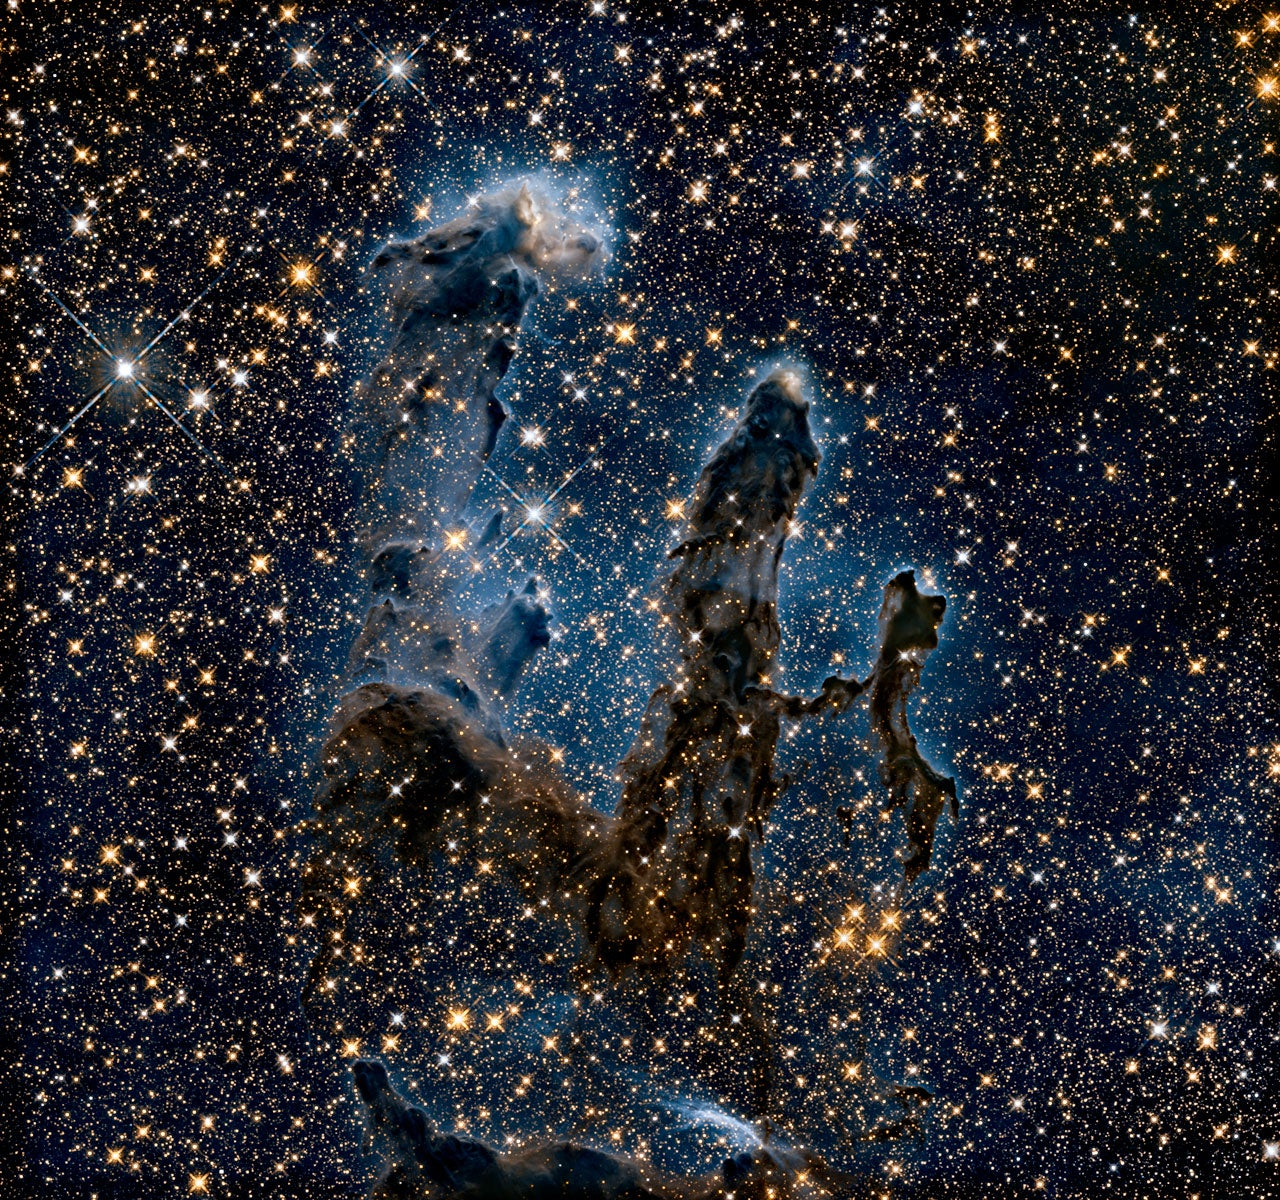 The Eagle Nebula's Pillars of Creation imaged in infrared light.